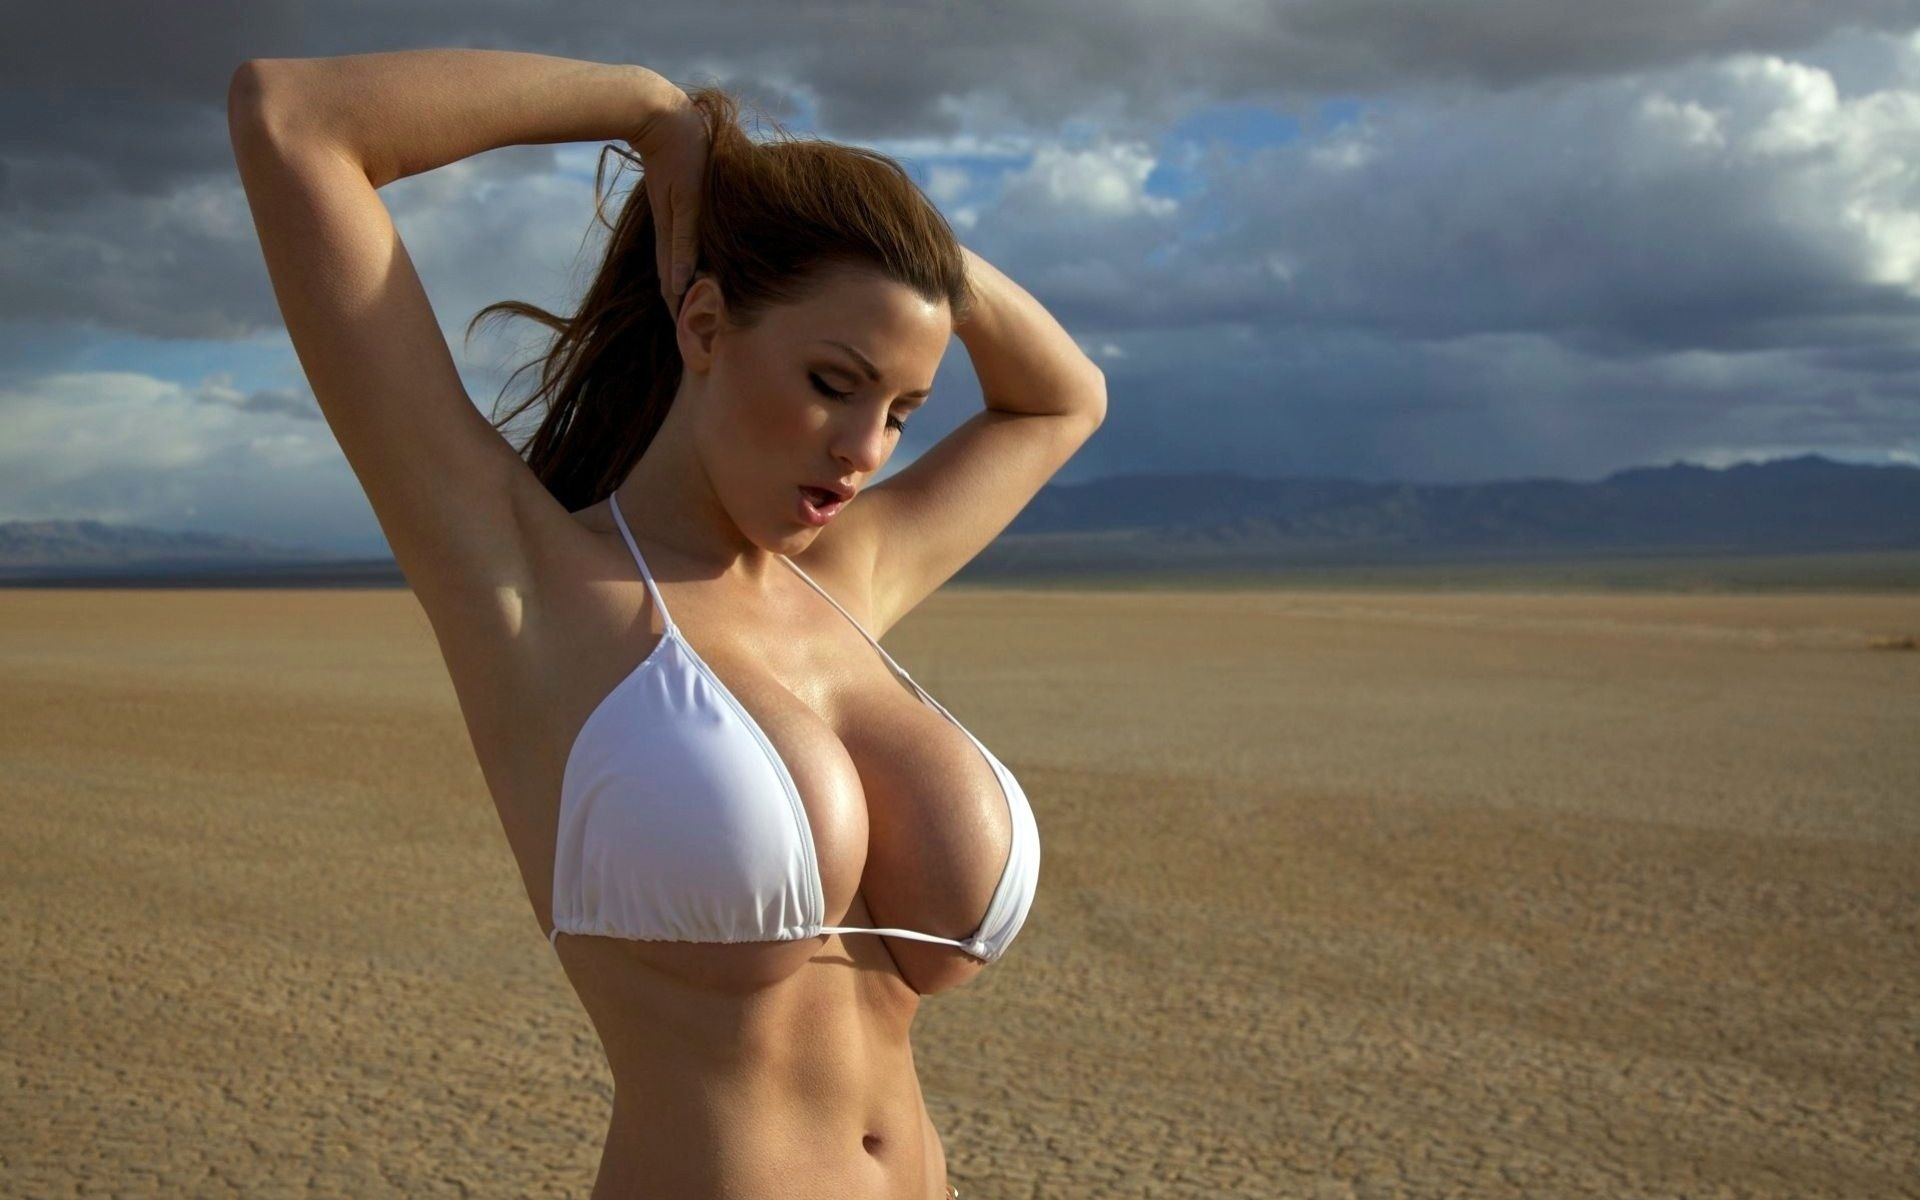 Jordan Carver tits big bikini mellons clouds boobs